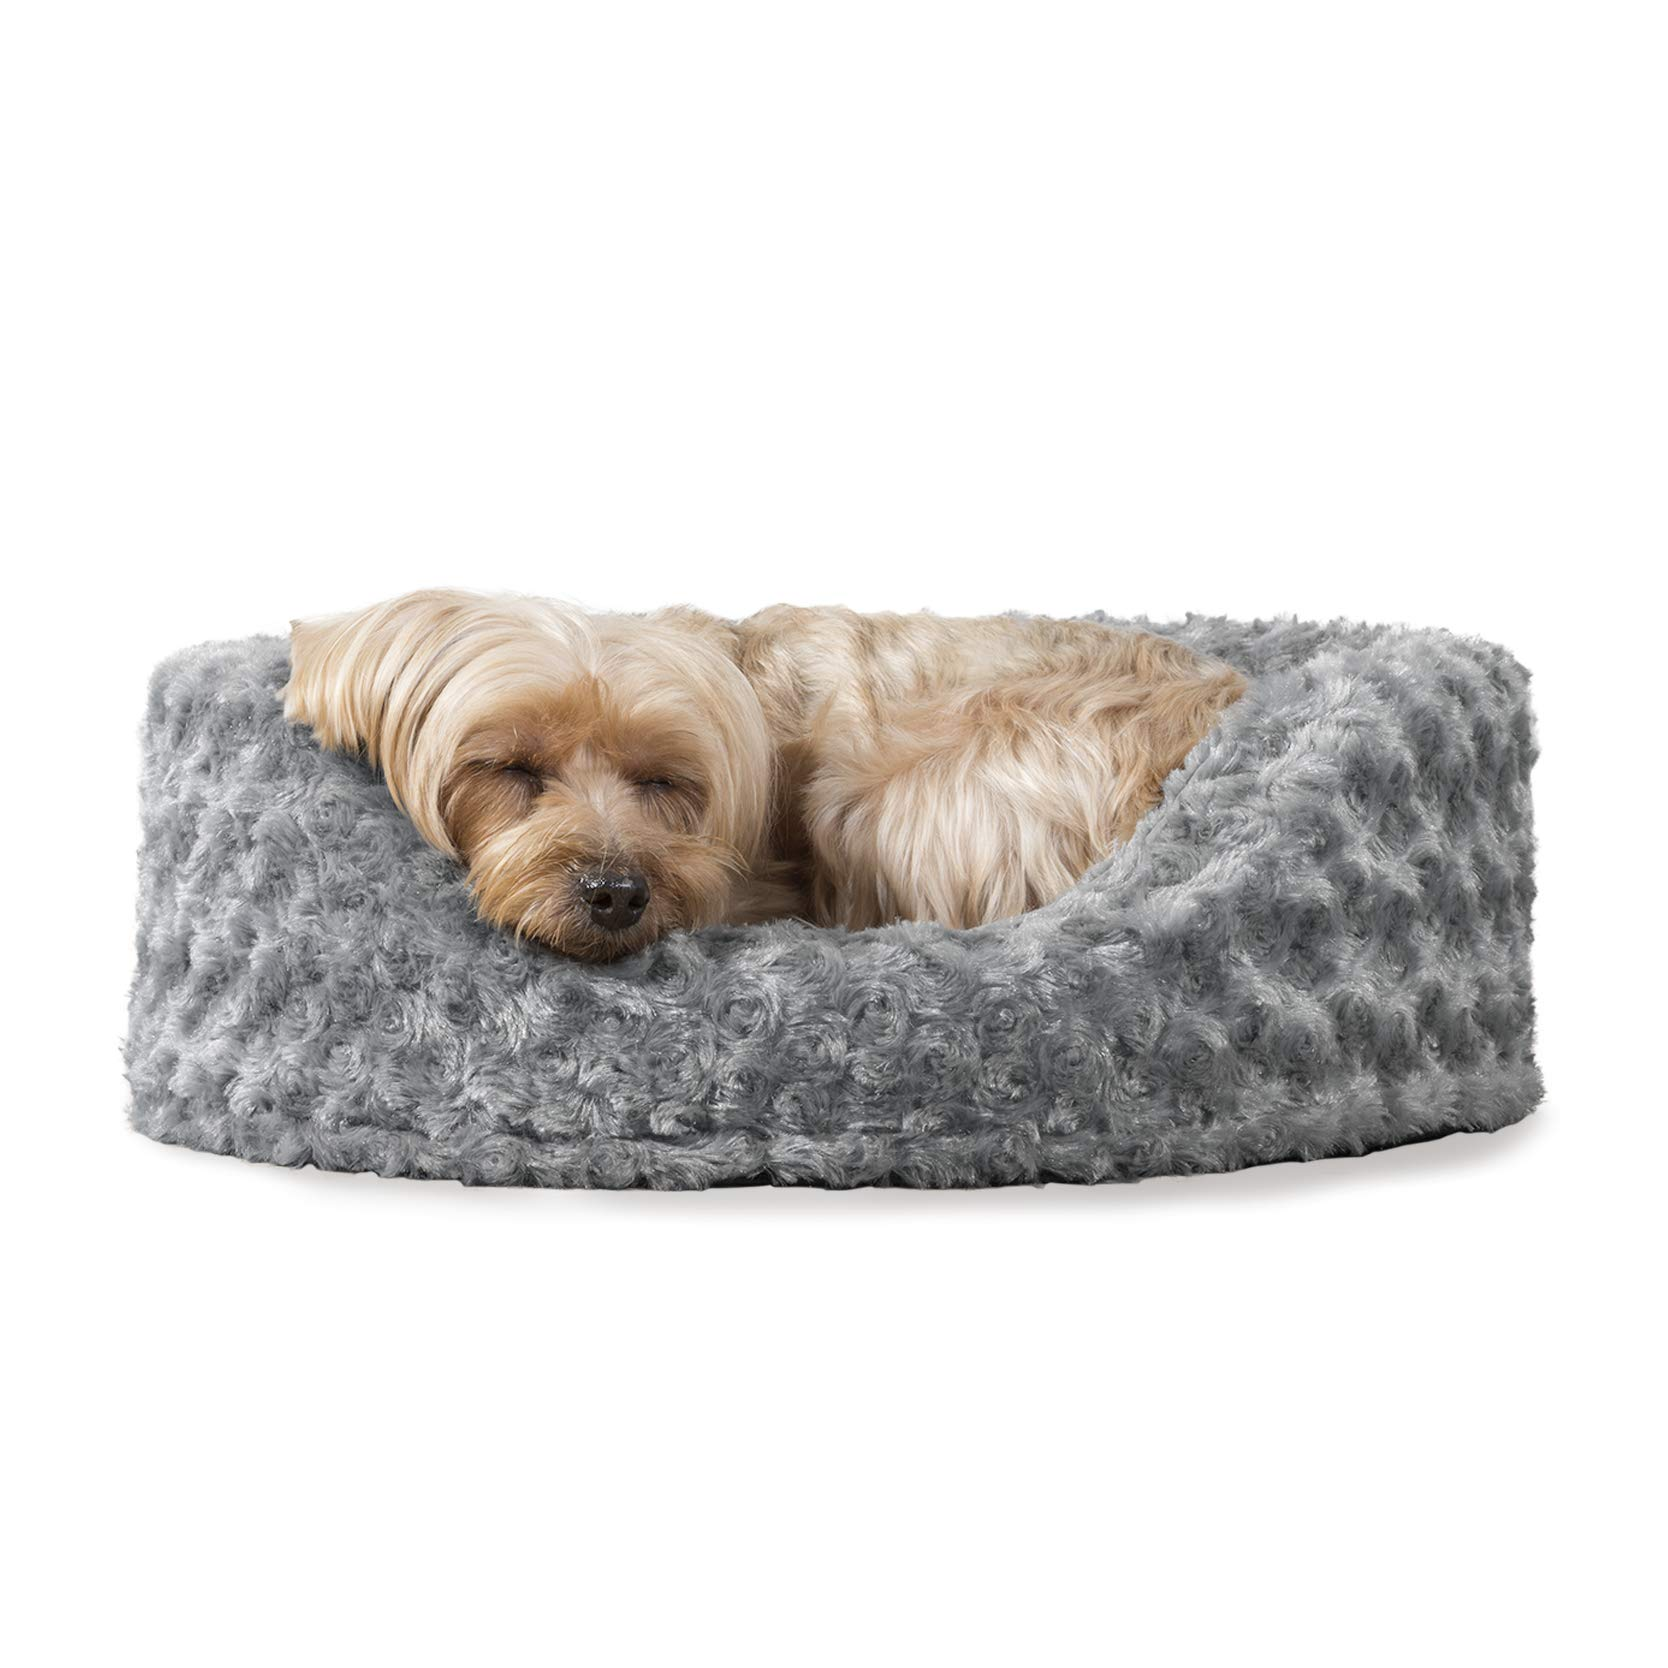 FurHaven Pet Dog Bed | Oval Ultra Plush Pet Bed for Dogs & Cats, Gray, Small